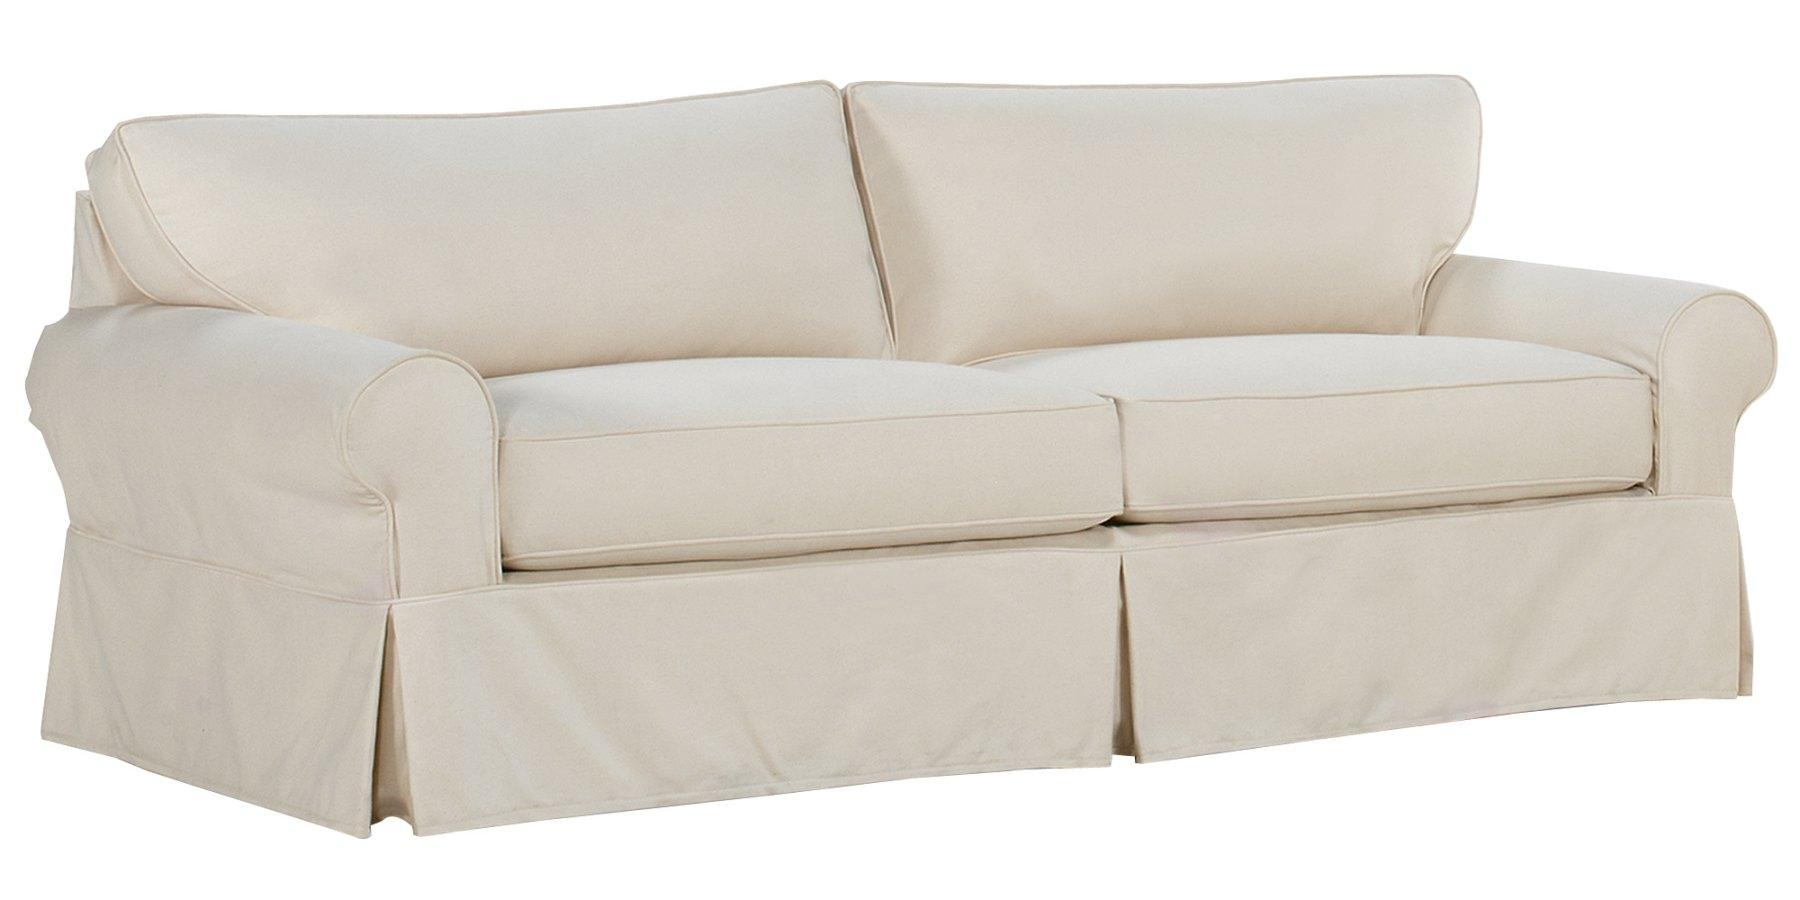 Oversized Sofas And Sofa Slipcover Furniture Online Within Sleeper Sofa Slipcovers (Image 15 of 20)